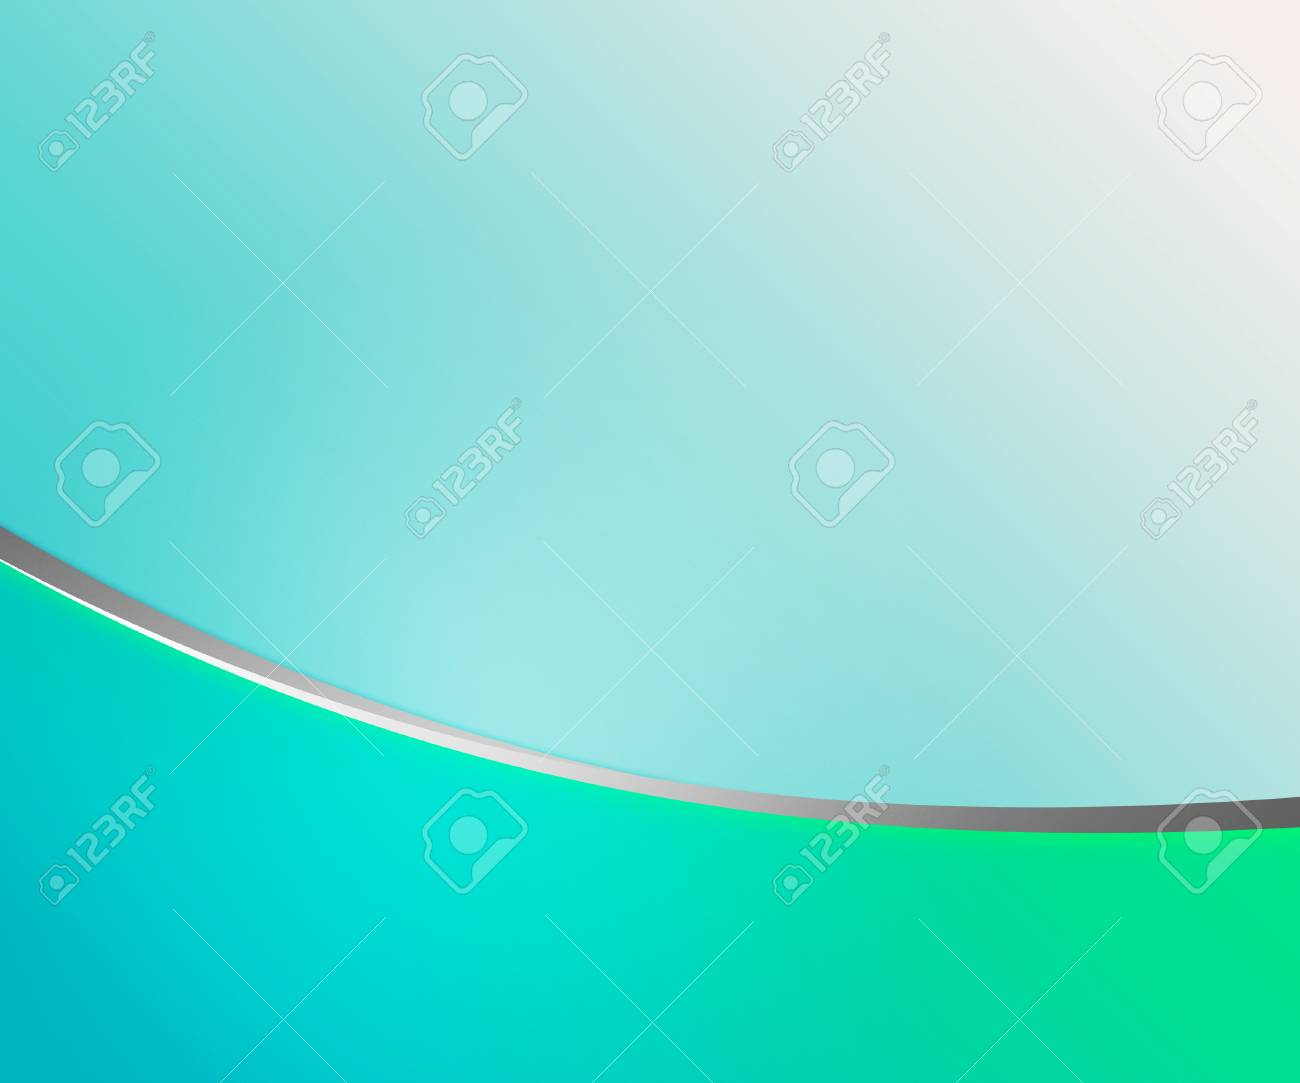 Teal Professional Background